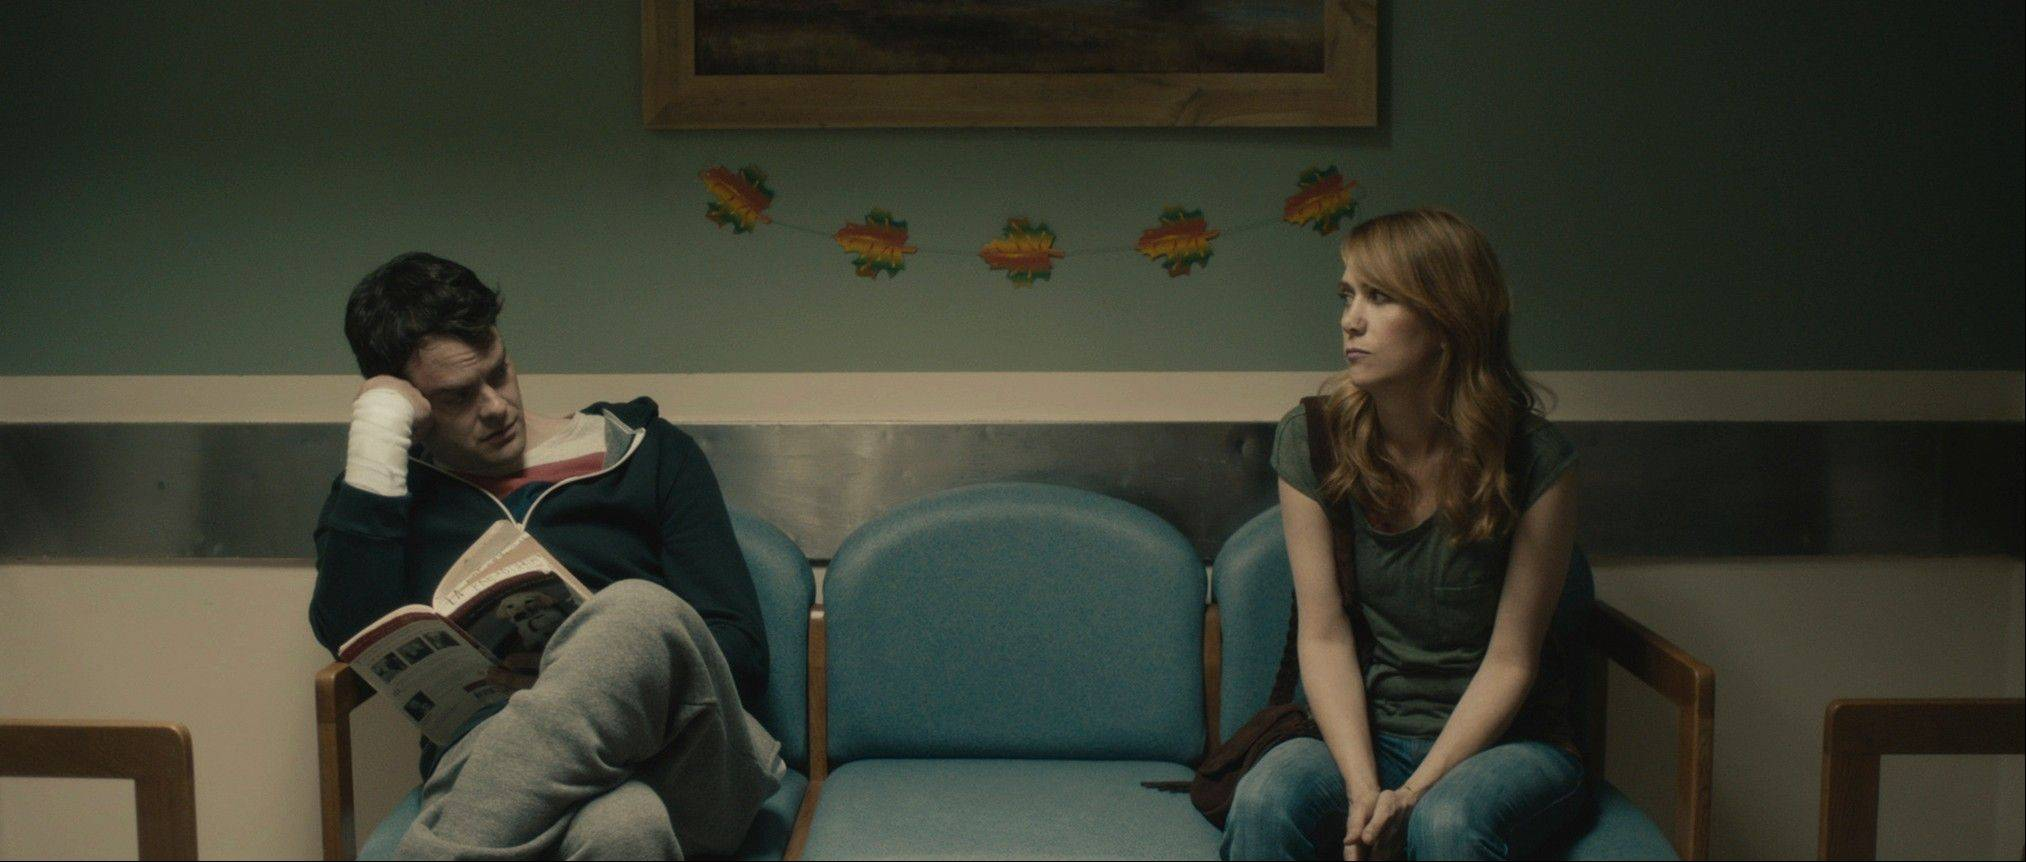 Bill Hader, left, and Kristen Wiig, star as estranged twins in �The Skeleton Twins,� directed by Craig Johnson.